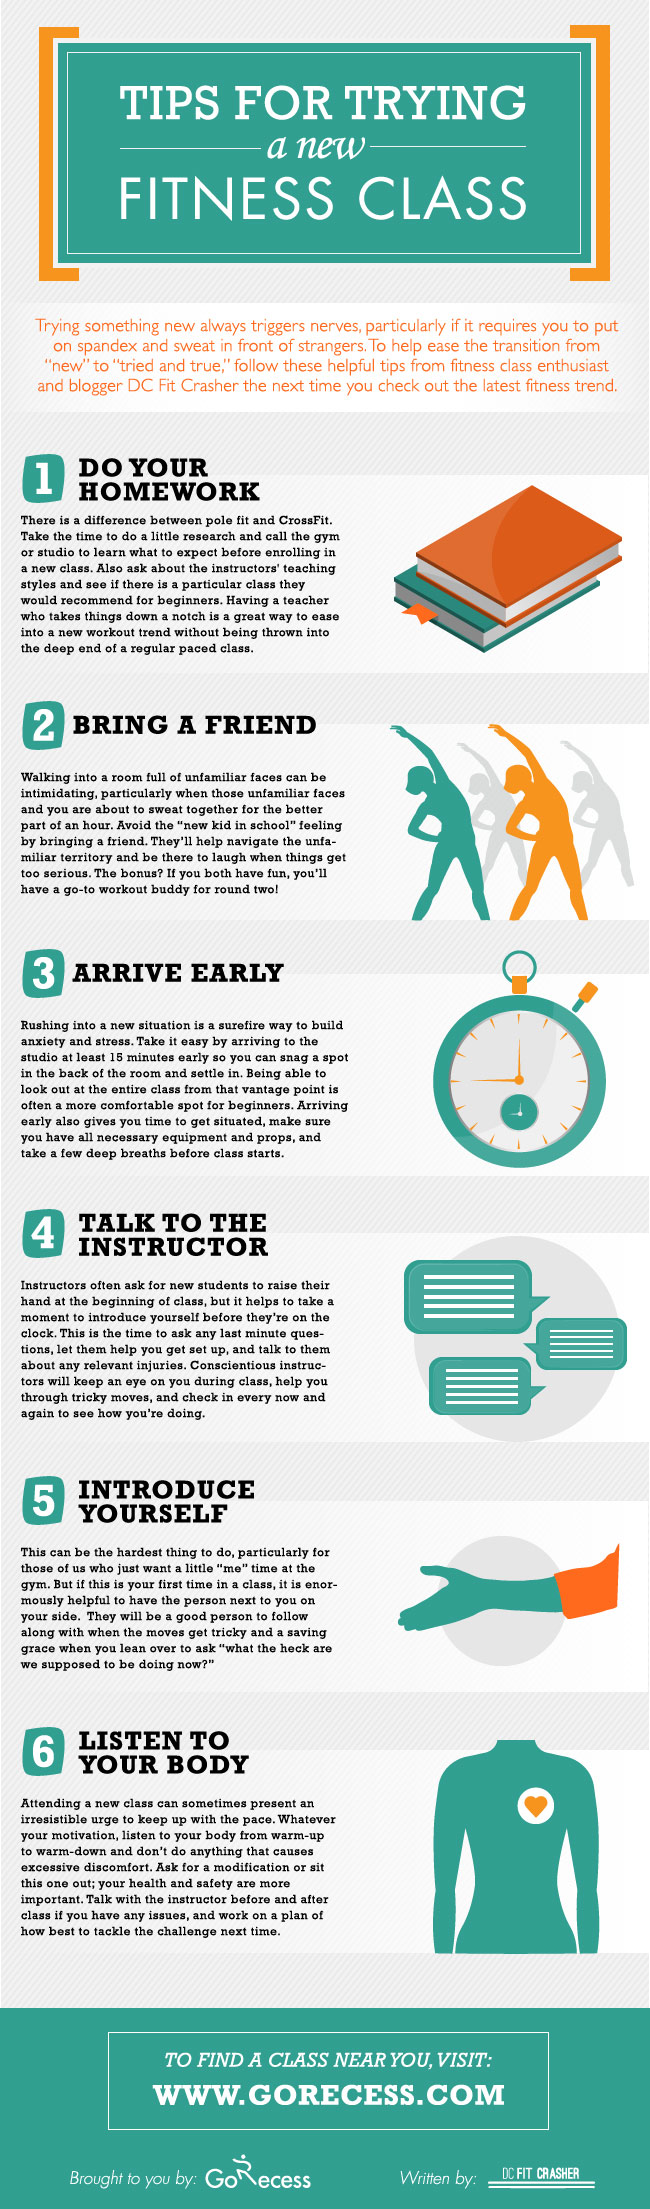 Tips For Trying A New Fitness Class : infographic